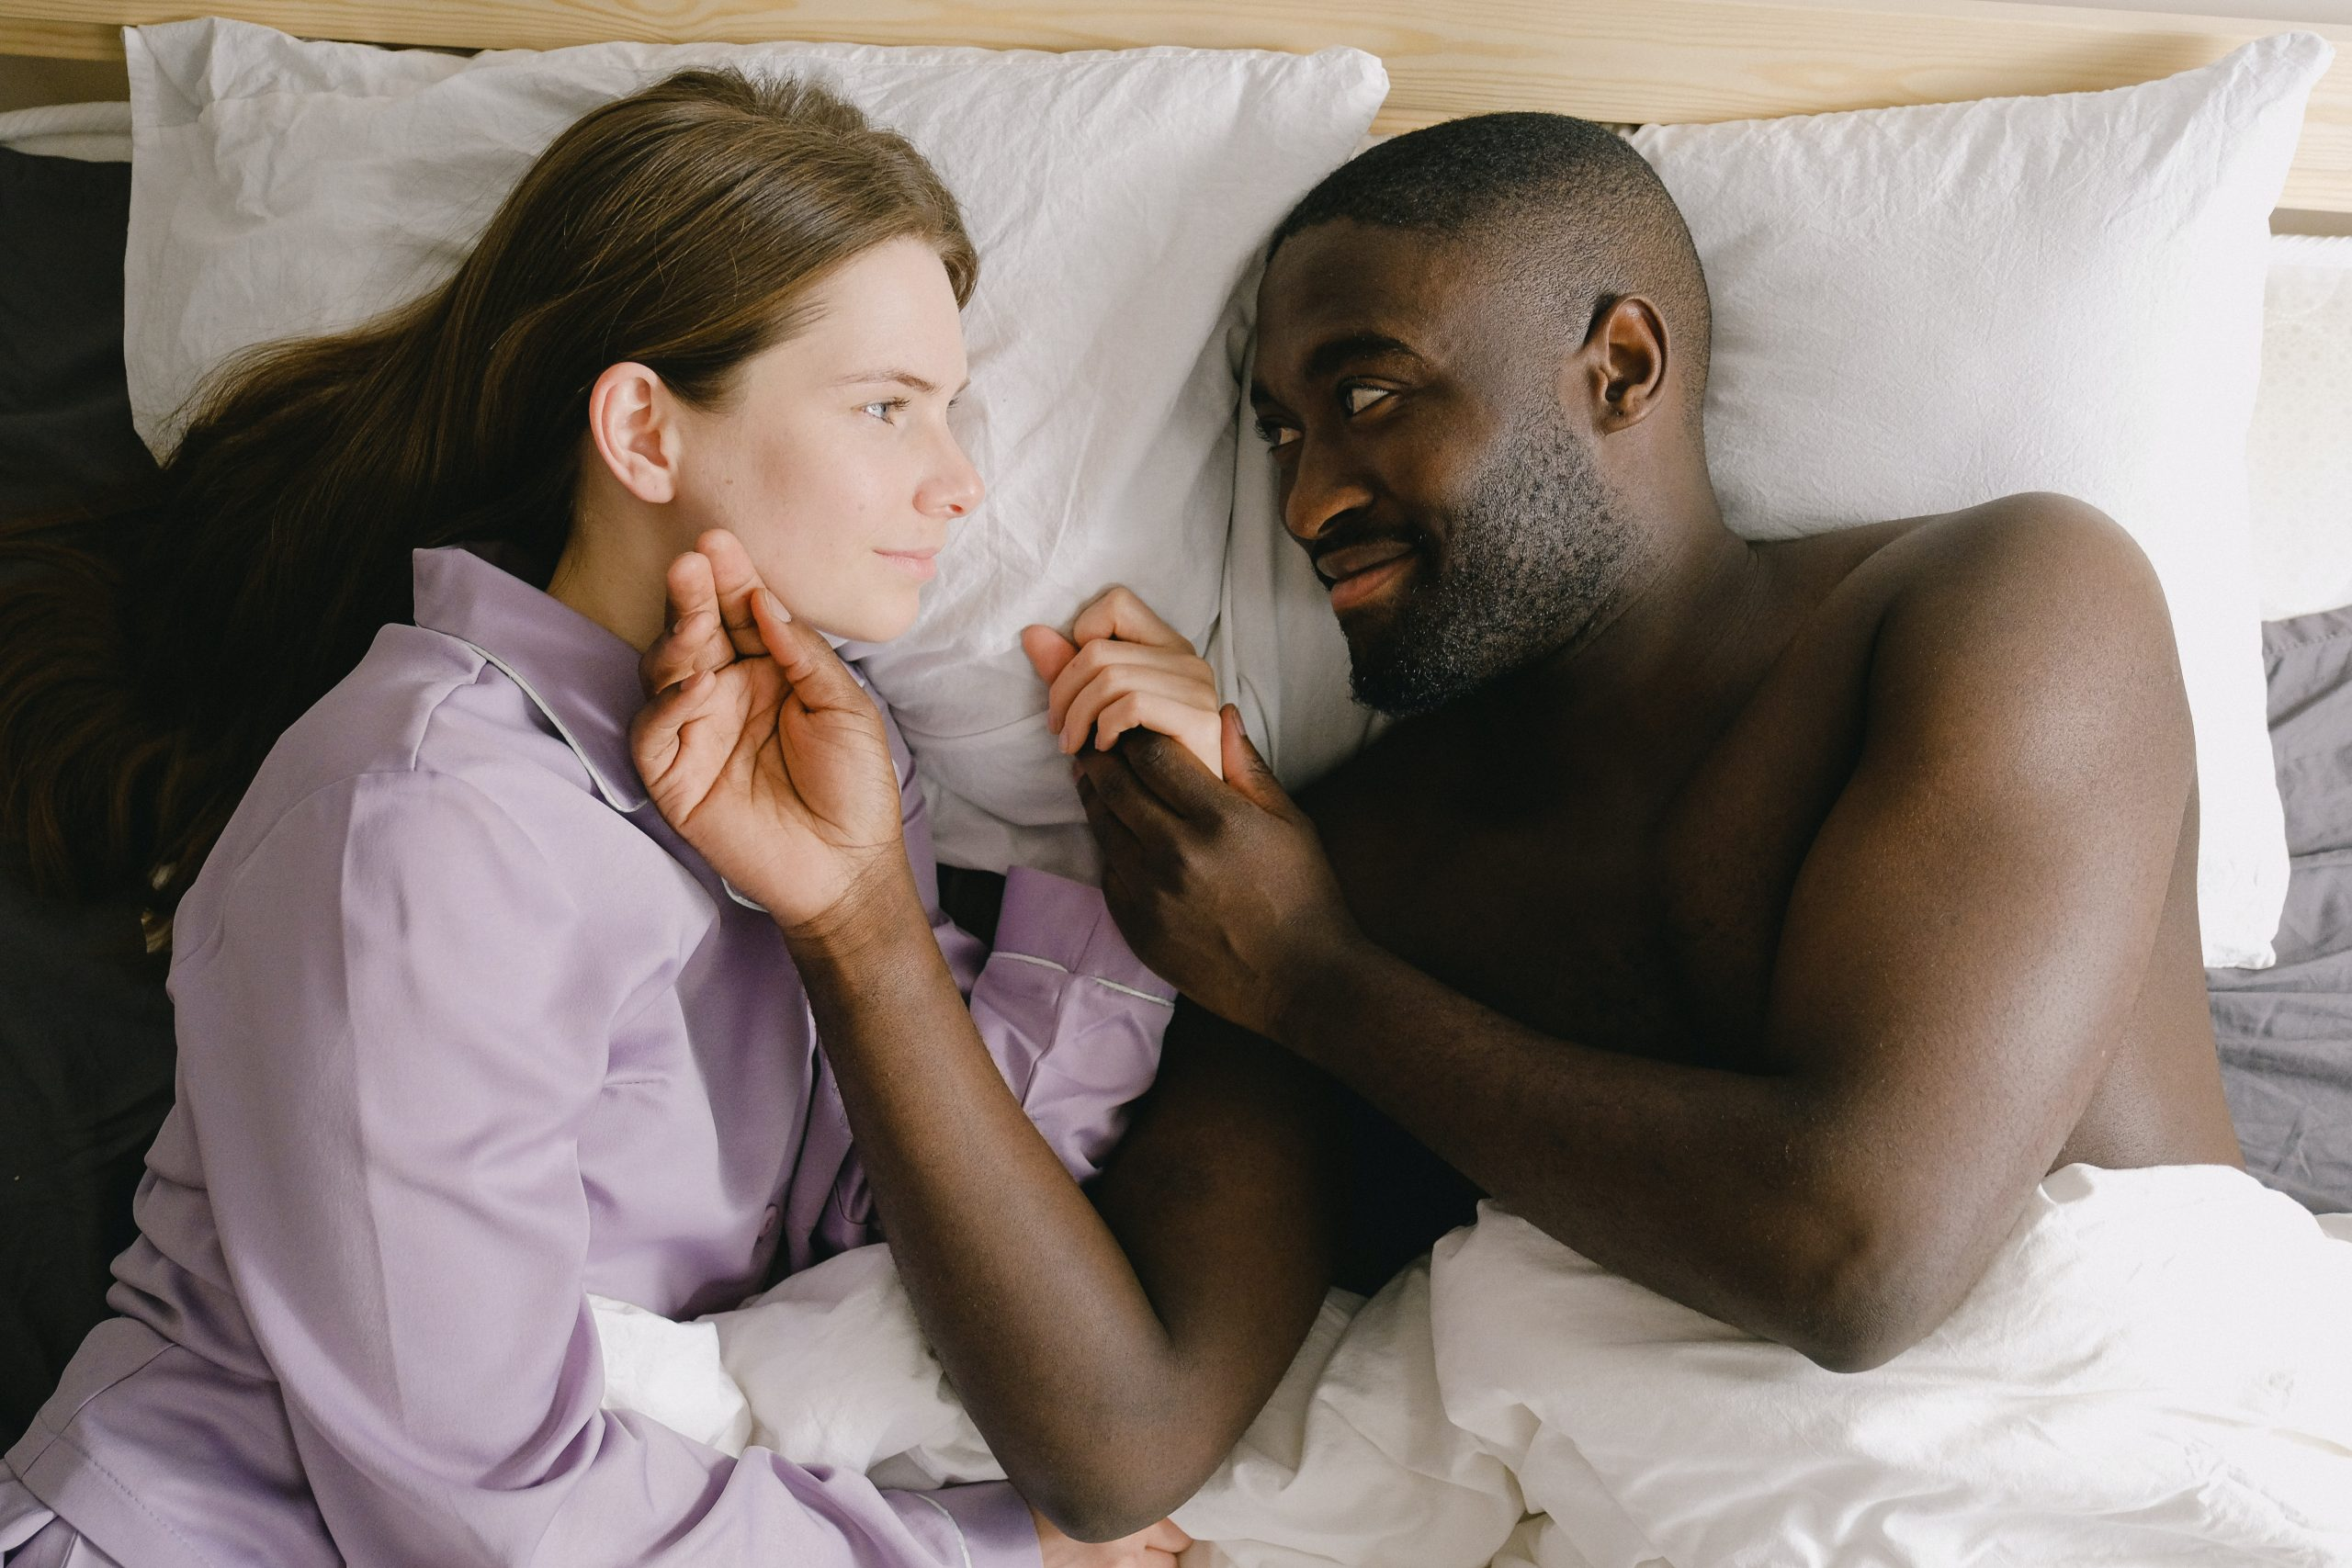 Why You Should Increase Intimacy In Your Relationship